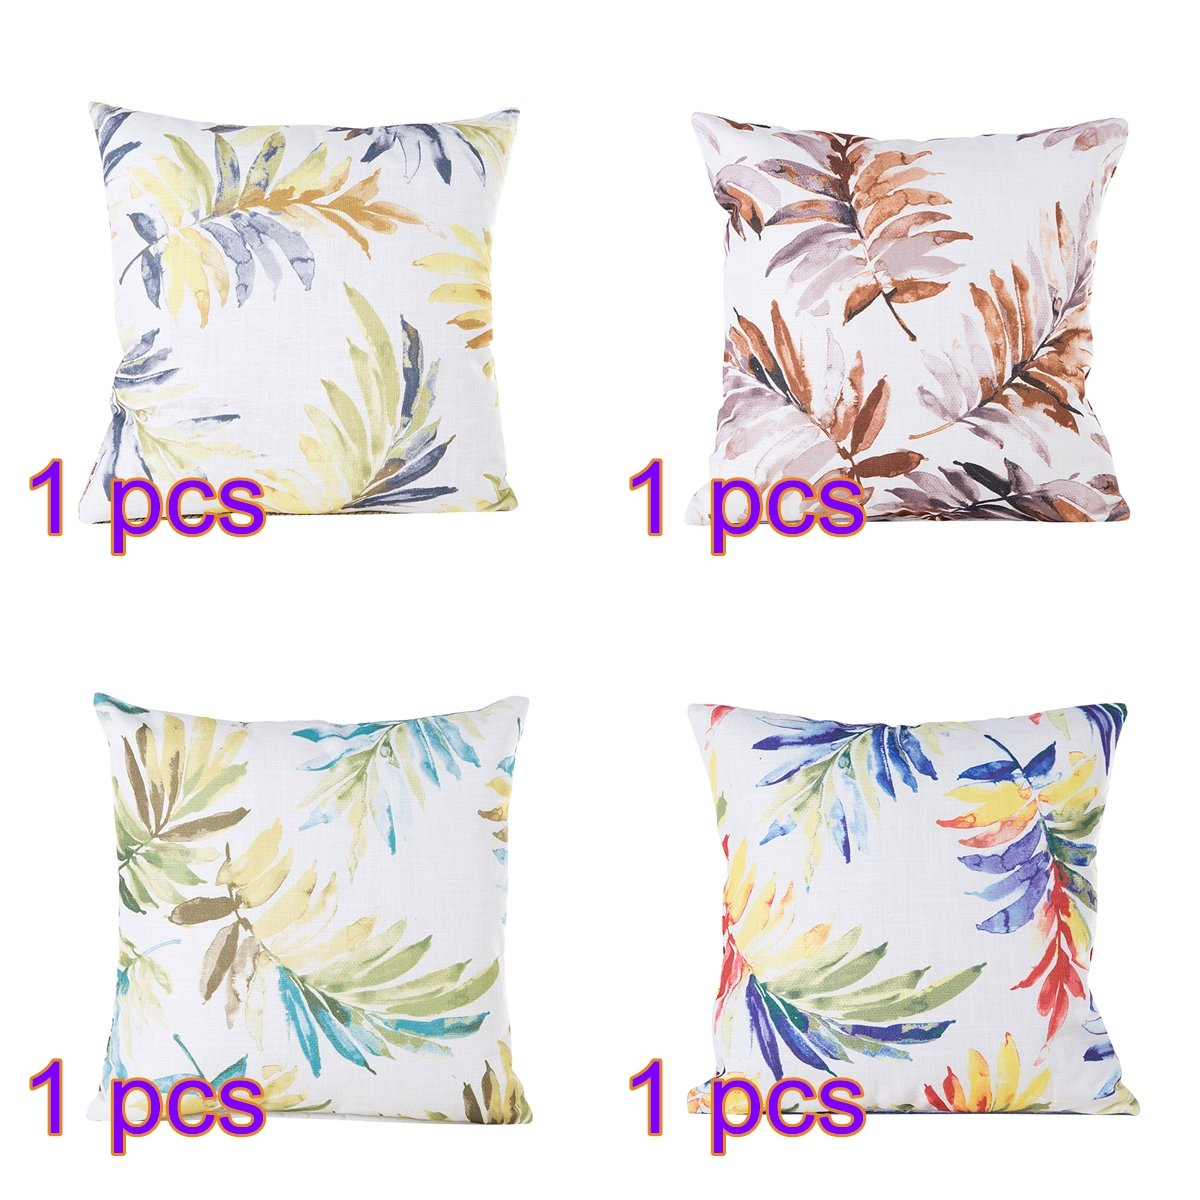 BELUPAI Pillow Cushion Four Different Feather Soft Adjustable Patterns Hypoallergenic Washable Removable Cover Hotel Home Bedding Pillows 4045CM set of 4